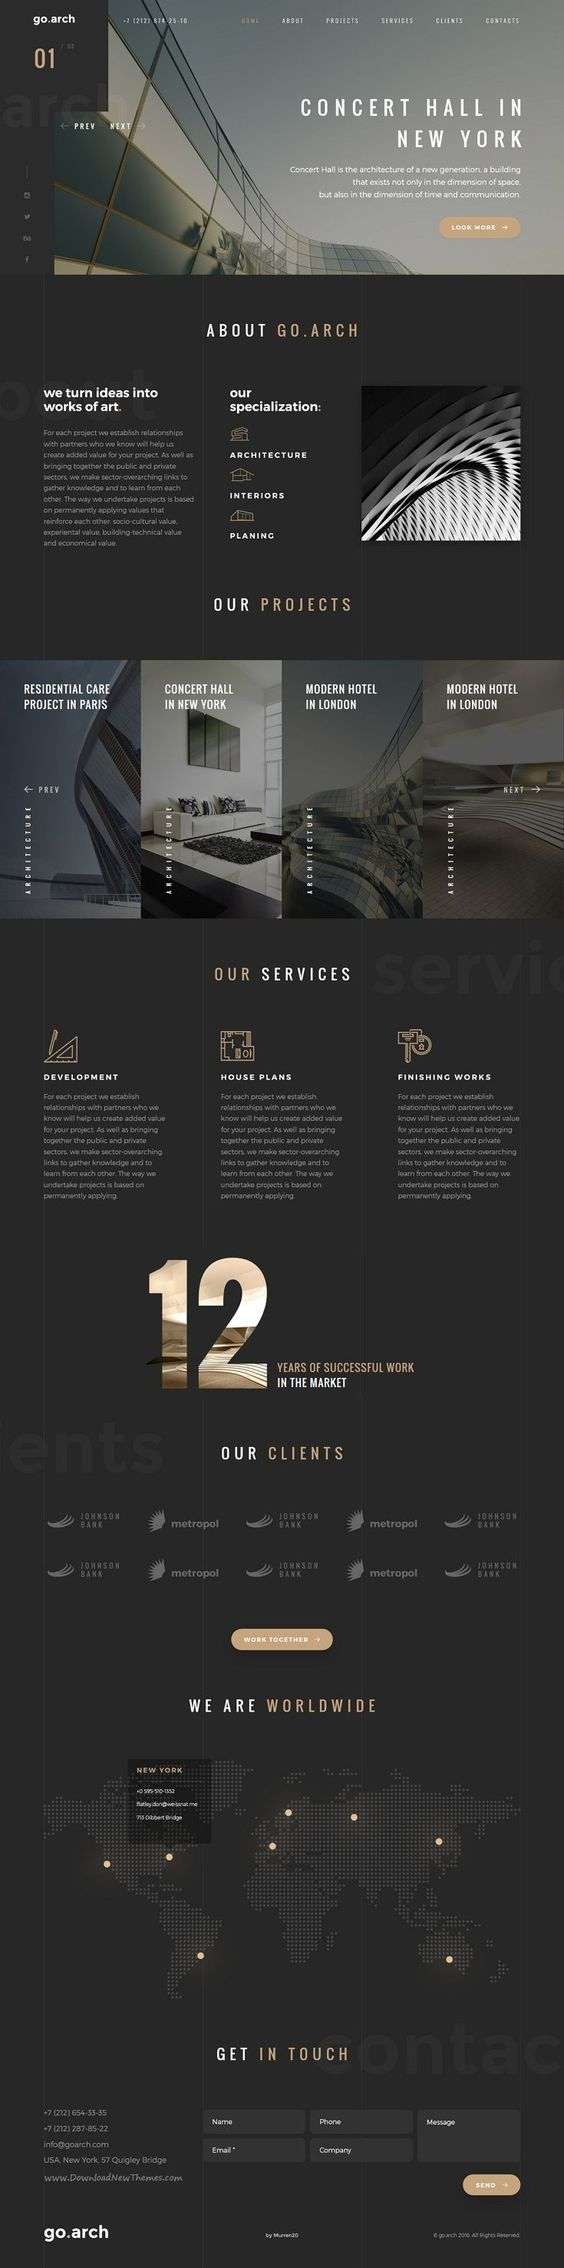 Gold and grey colour scheme , classic visual appeal on this website